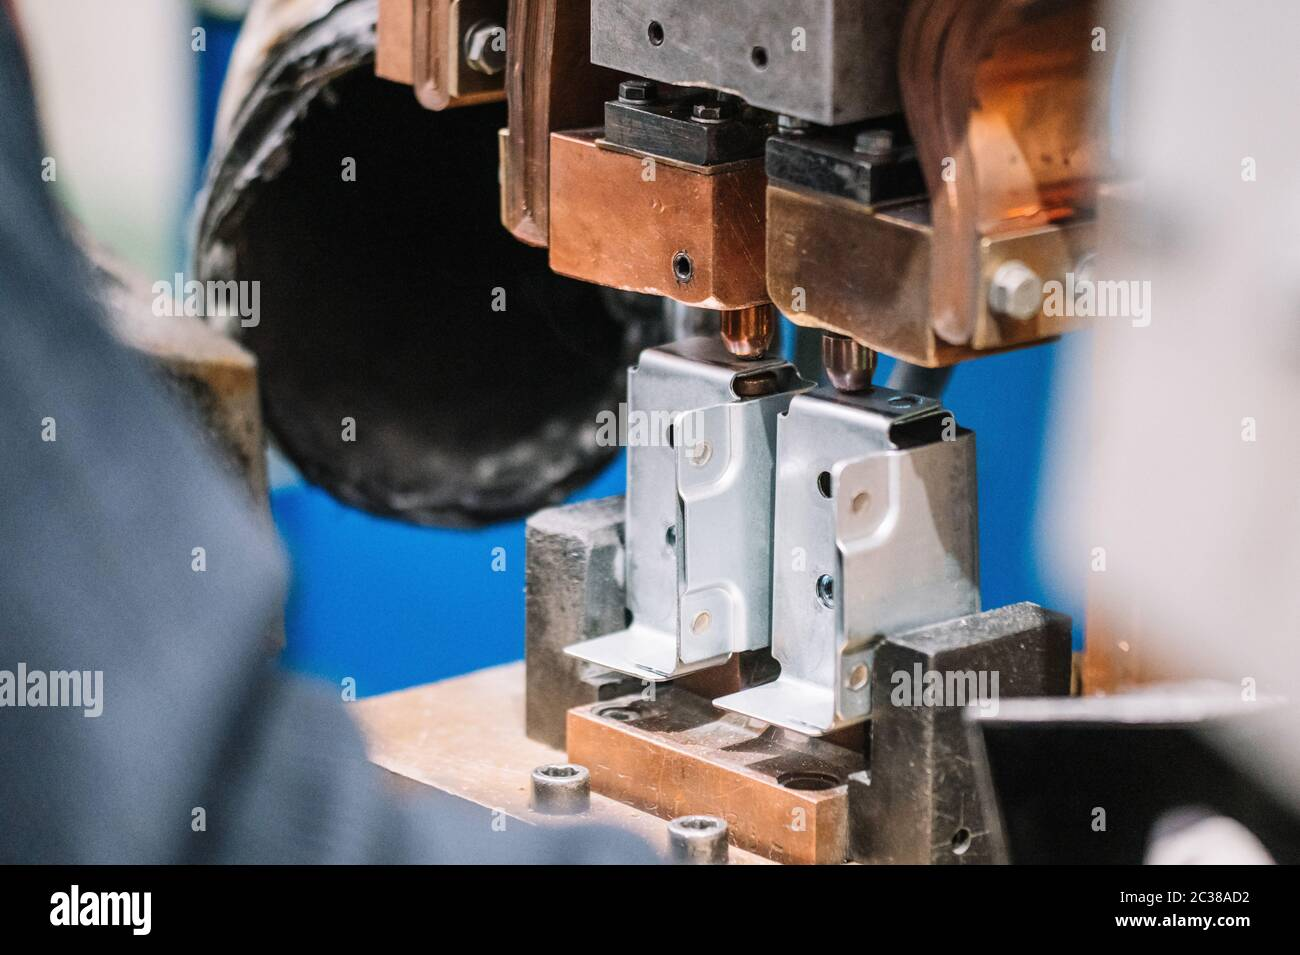 Spot Welding Machine Industrial Automotive Part In Factory Operator Working In Industry Stock Photo Alamy